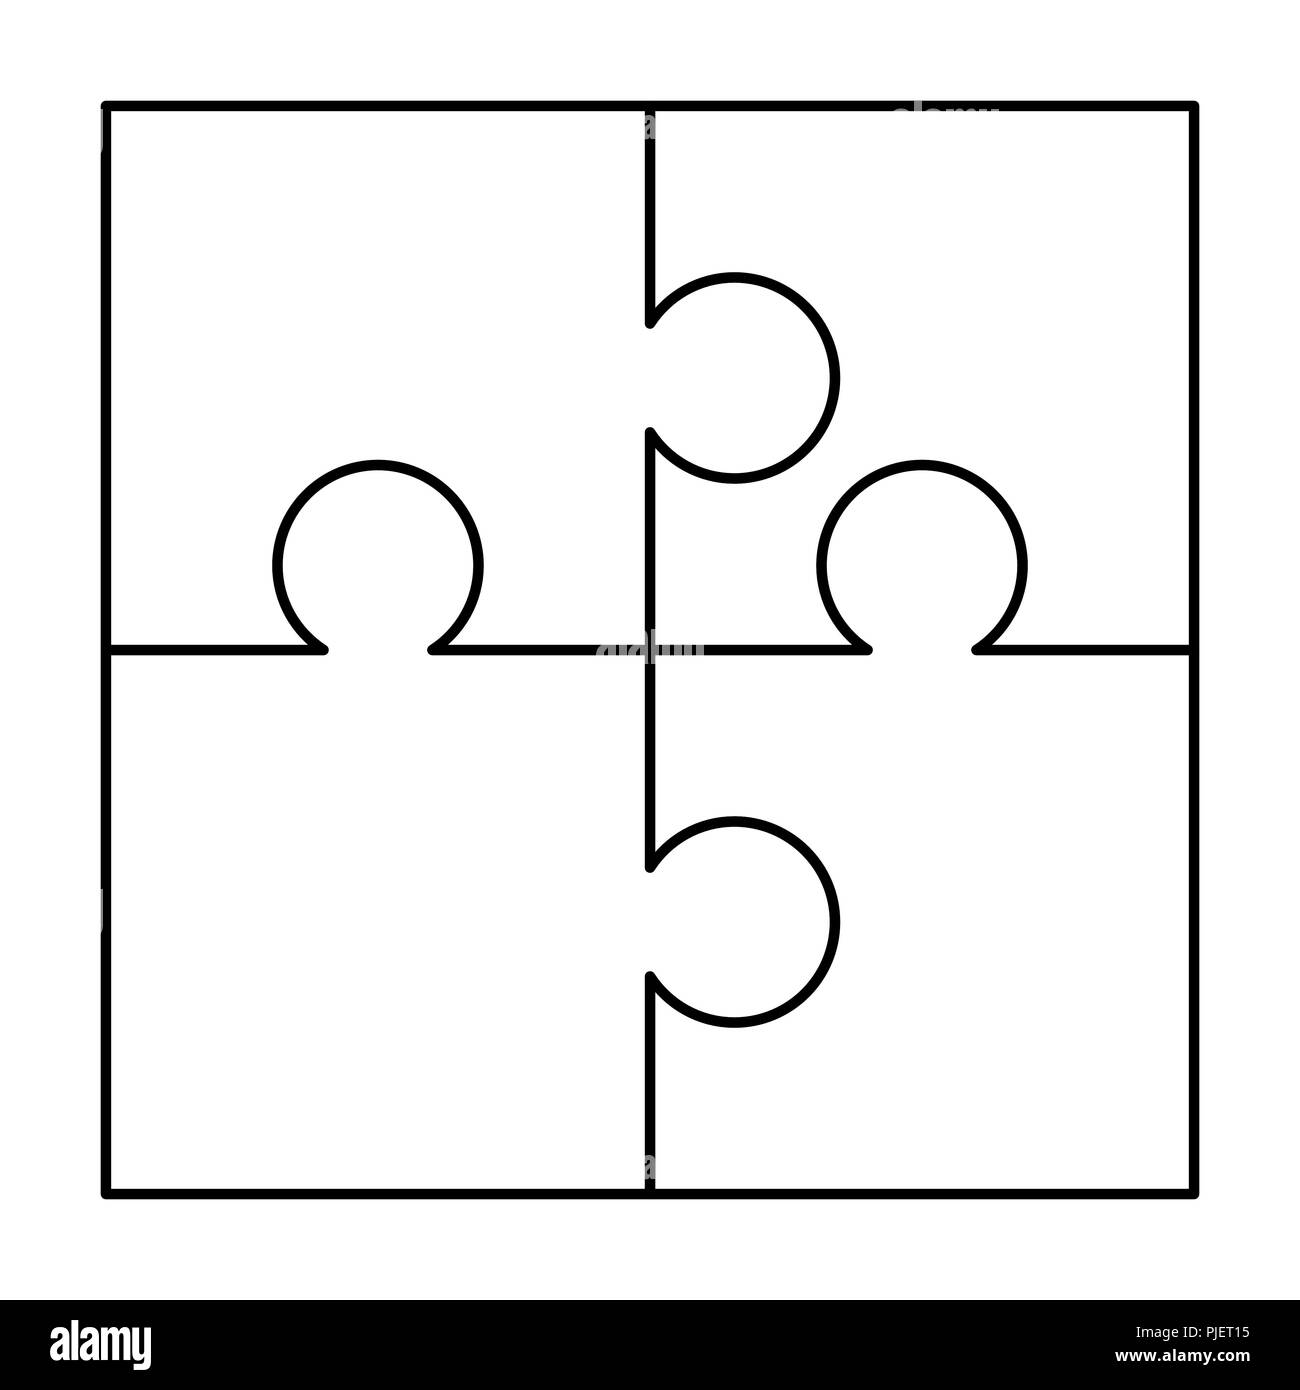 4 White Puzzles Pieces Arranged In A Square Jigsaw Puzzle Template